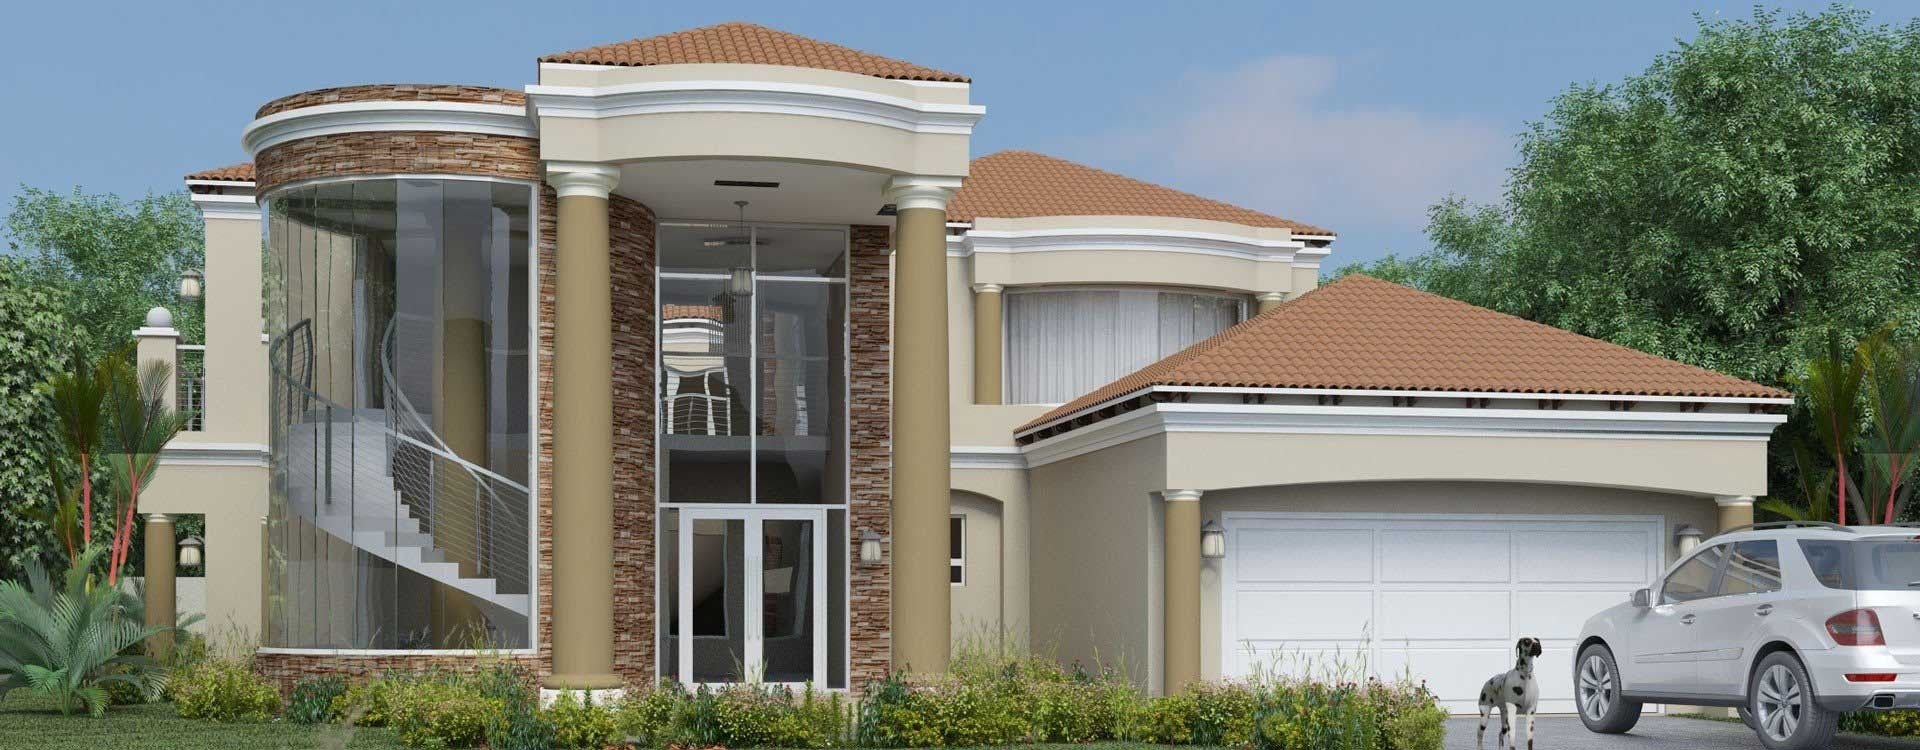 Join Nethouseplans Today And Enjoy The Benefits Of Discounted House Plans And Much More Brows Tuscan House Plans 4 Bedroom House Plans Home Design Floor Plans